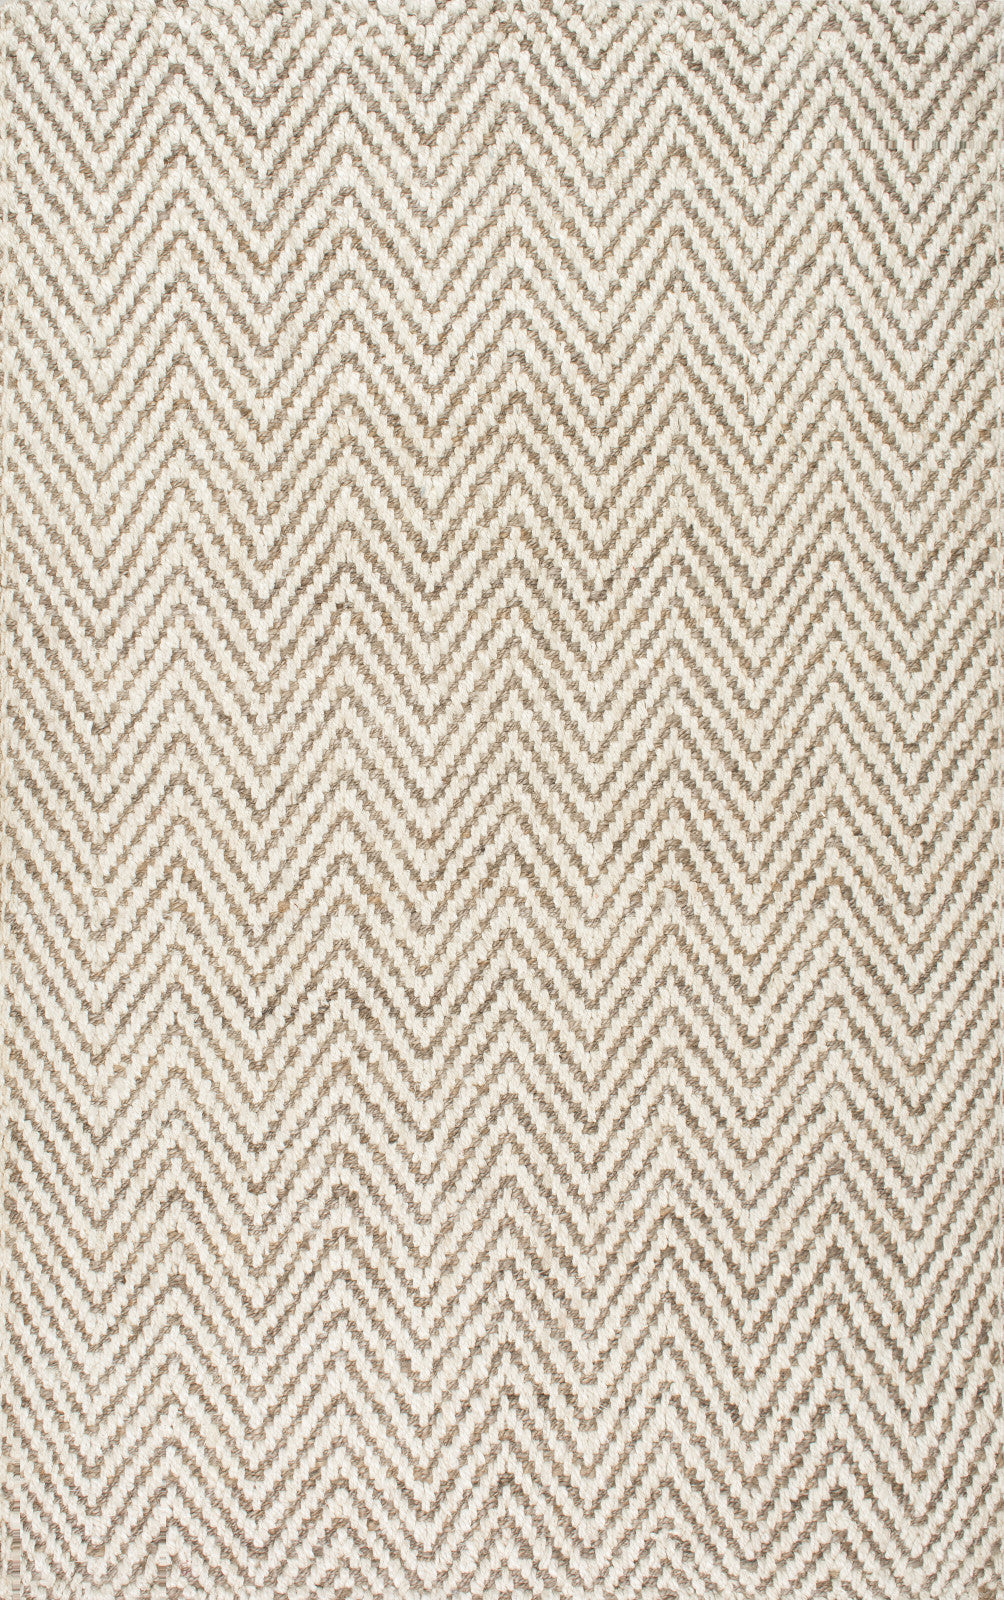 nuLOOM Jute Vania Chevron CLWA03A Ivory Area Rug main image